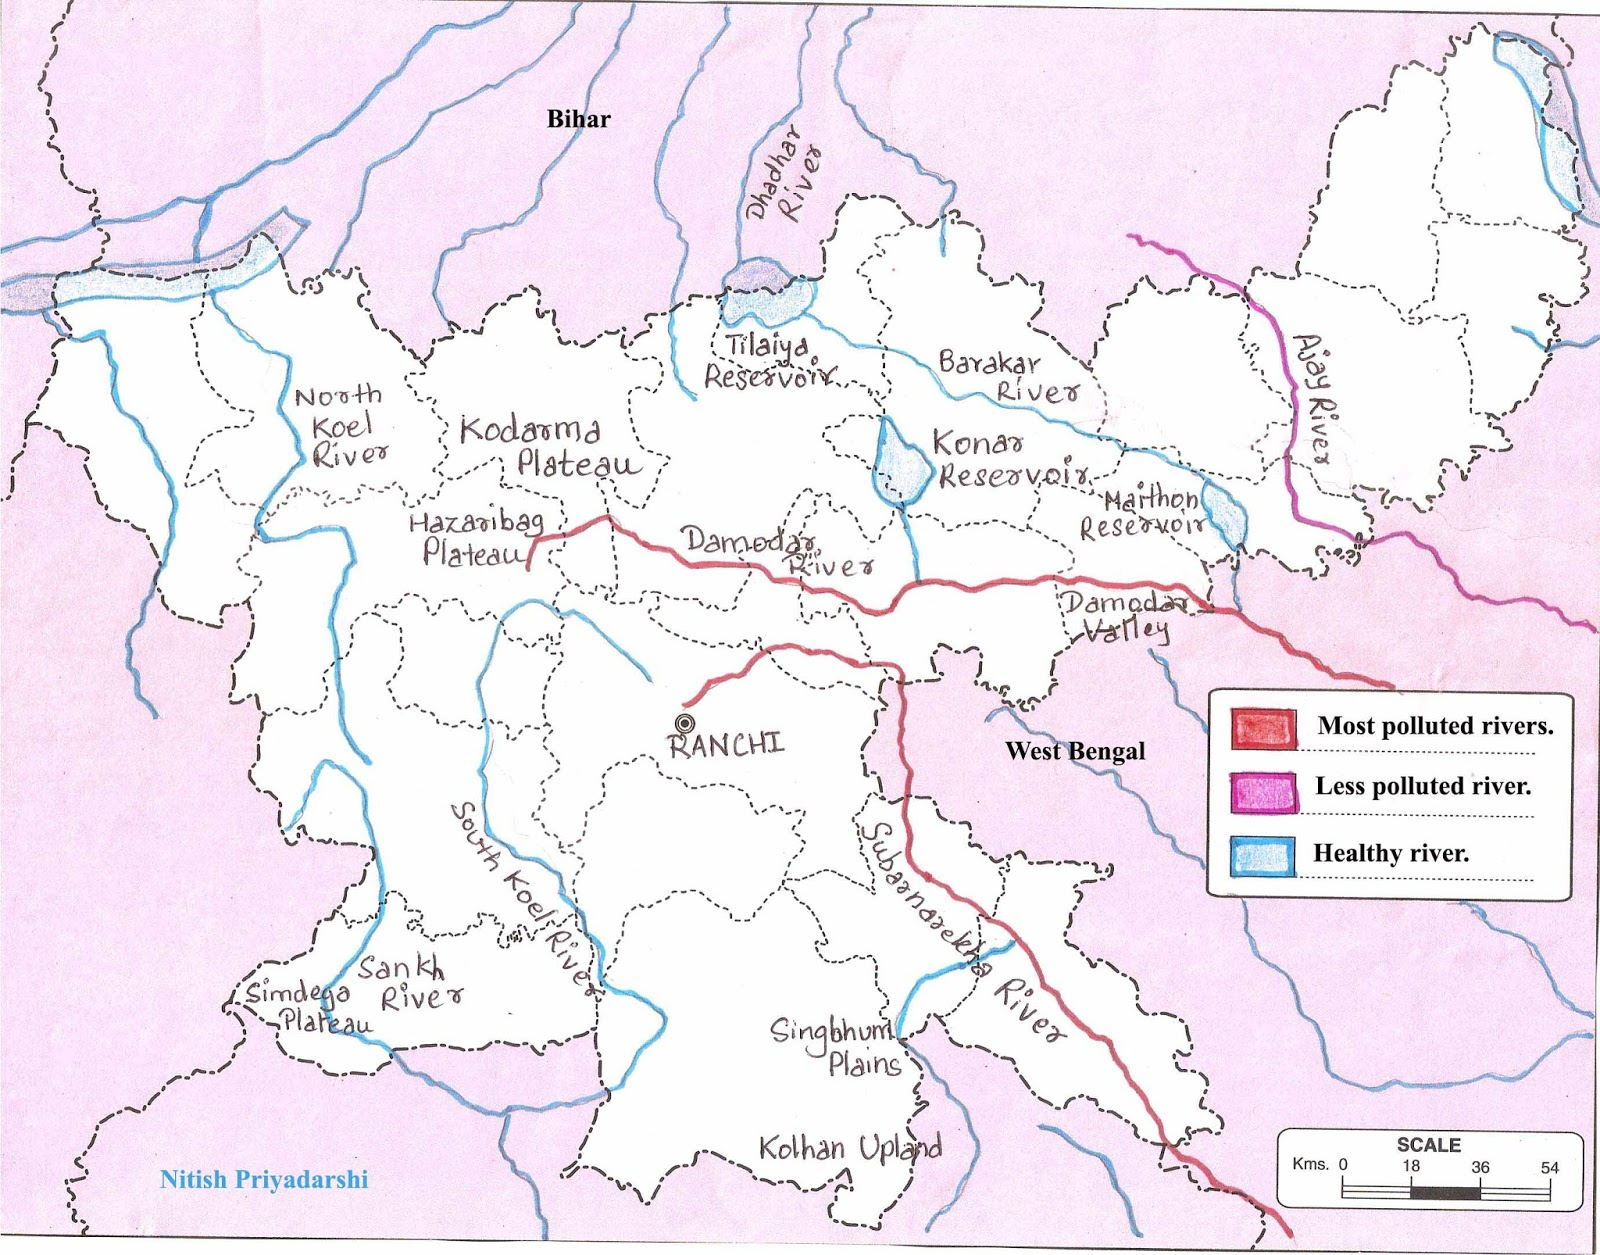 Worksheet. Environment and Geology Assessment of the health of Jharkhand Rivers